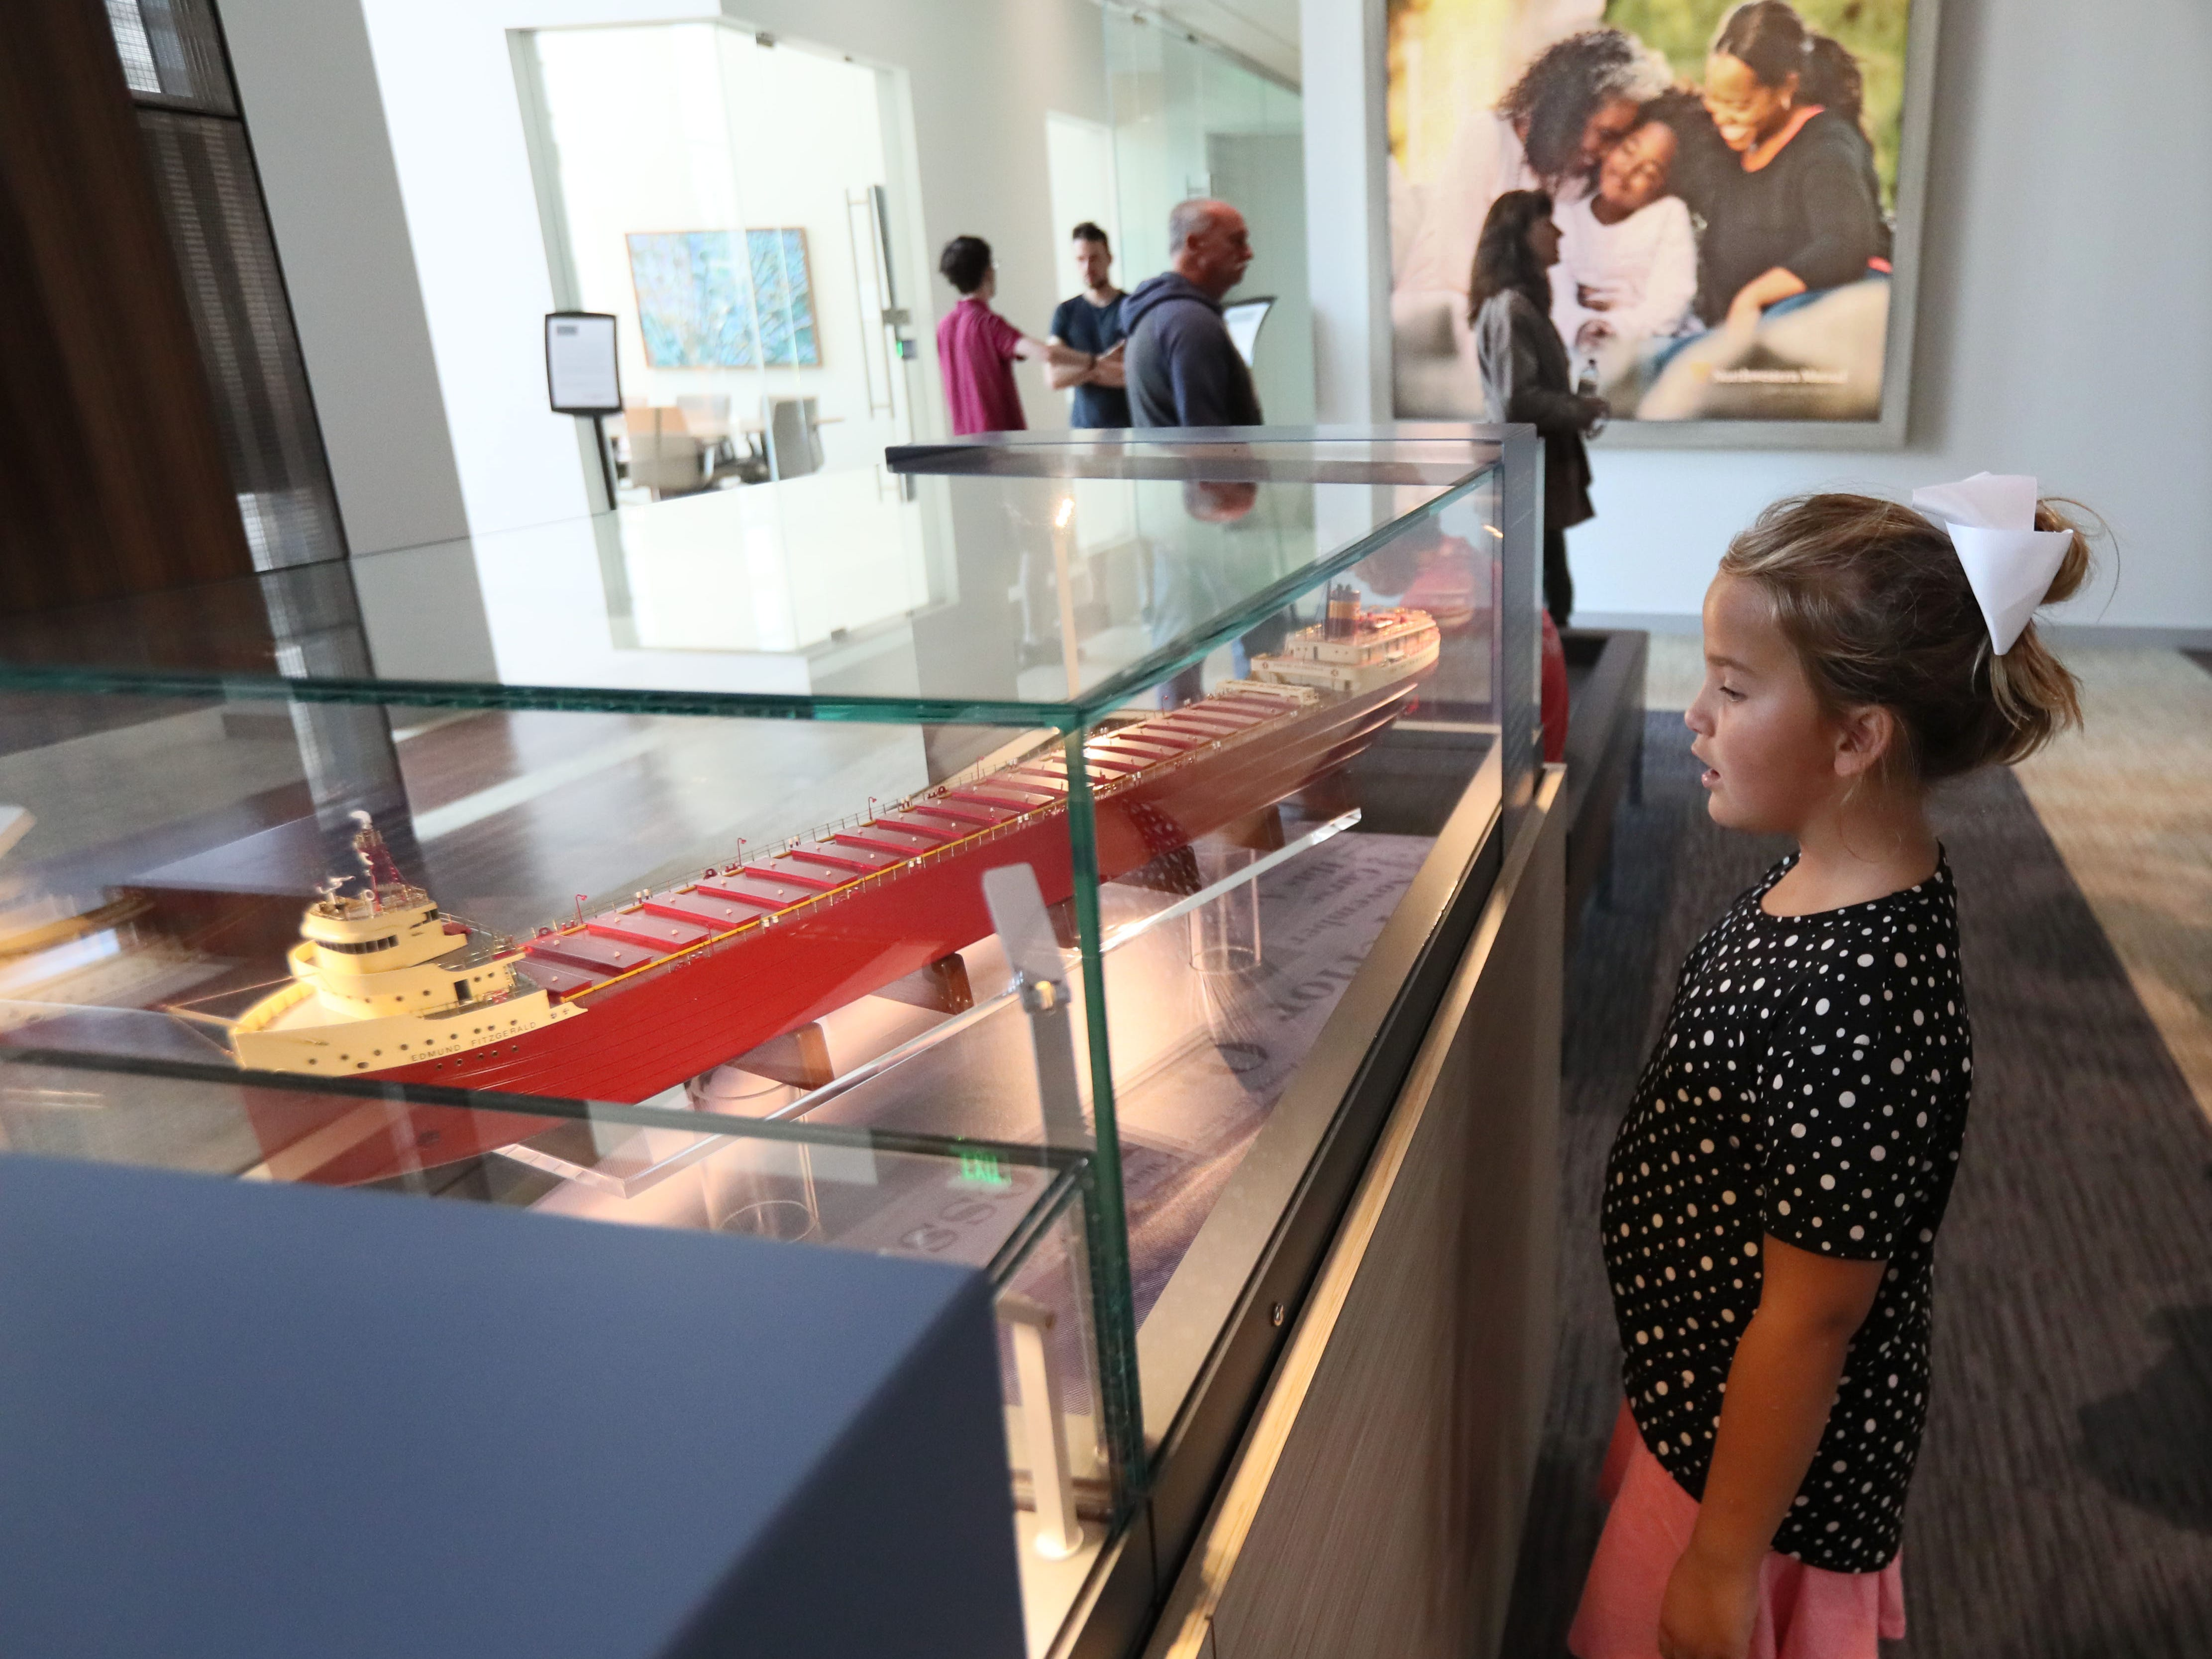 Lauren Pelz, 7, of Fond du Lac looks over a model of the Edmund Fitzgerald inside the Northwestern Mutual Tower and Commons. The ship was named for the chairman of Northwestern Mutual Life Insurance Co., which owned and insured the freighter.